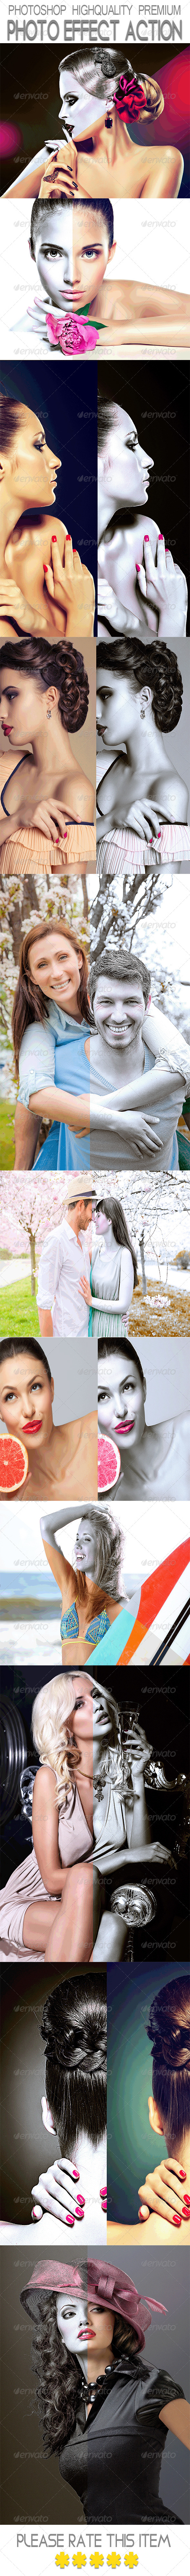 GraphicRiver Photoshop Highquality Premium Photo Effect Action 8108866